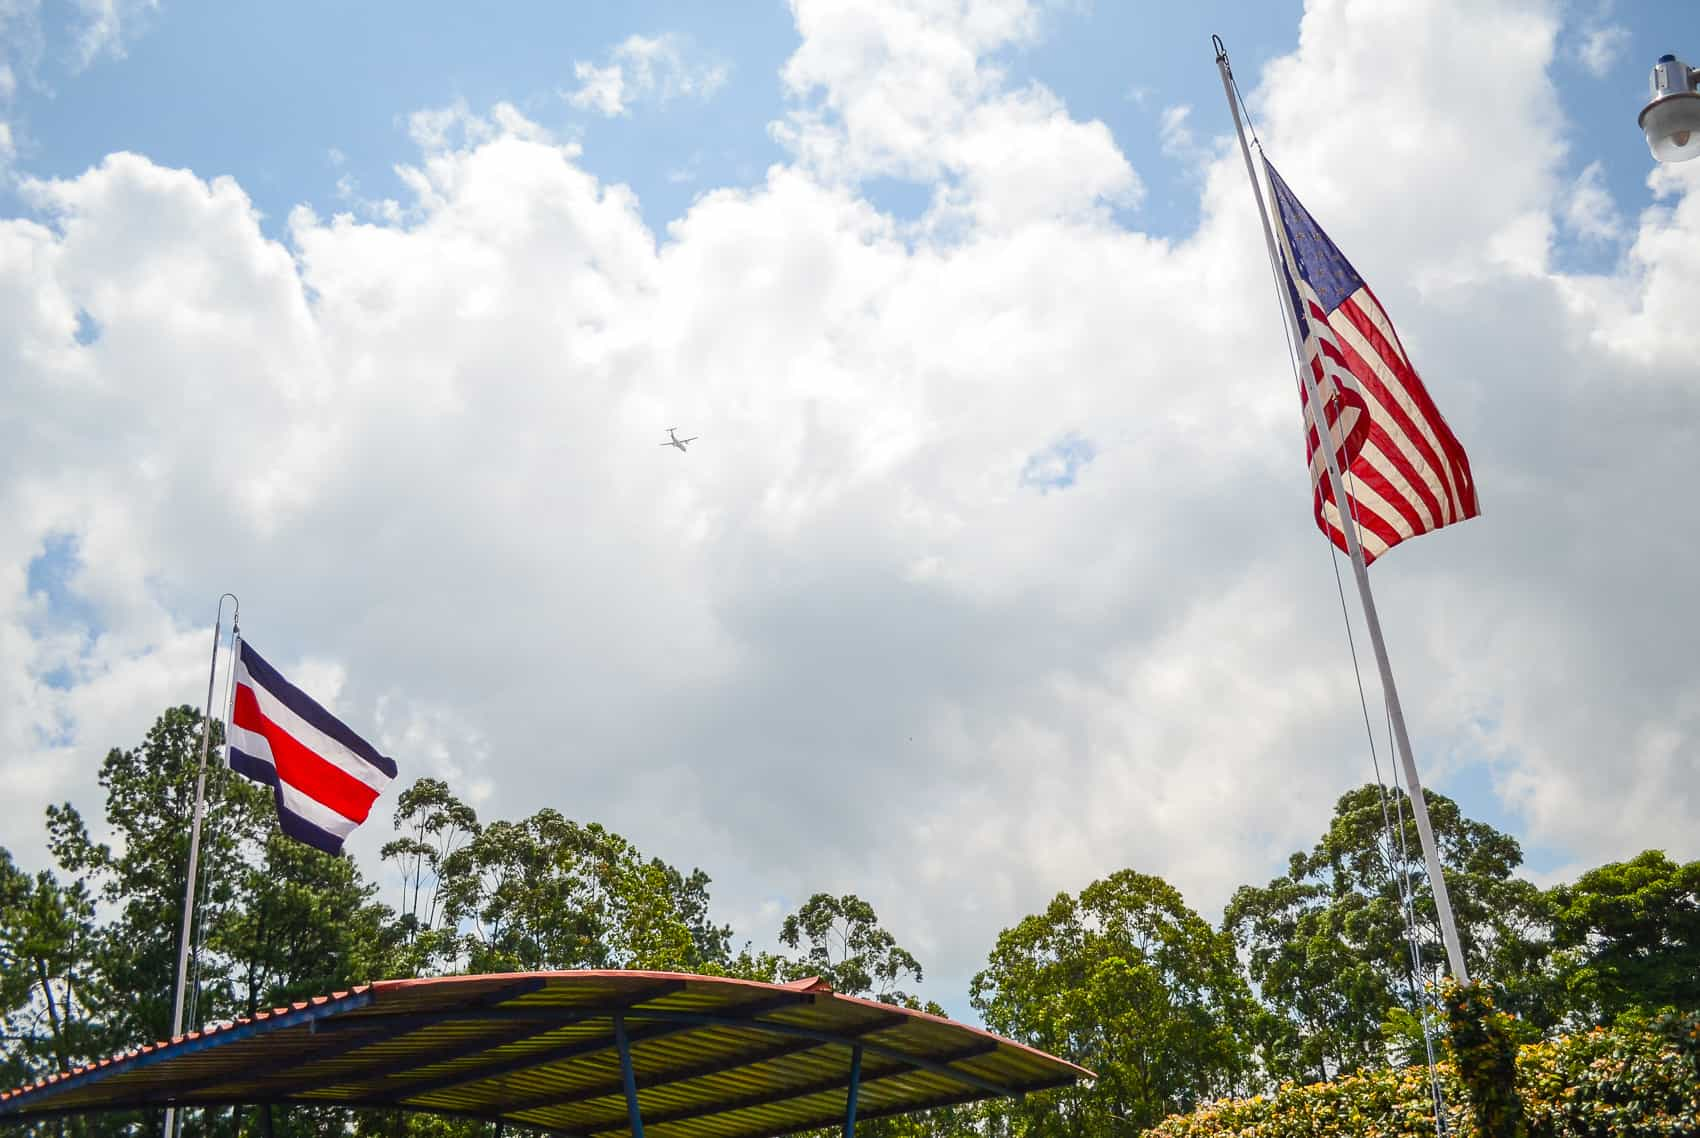 The Costa Rican and U.S. flags flying side-by-side.